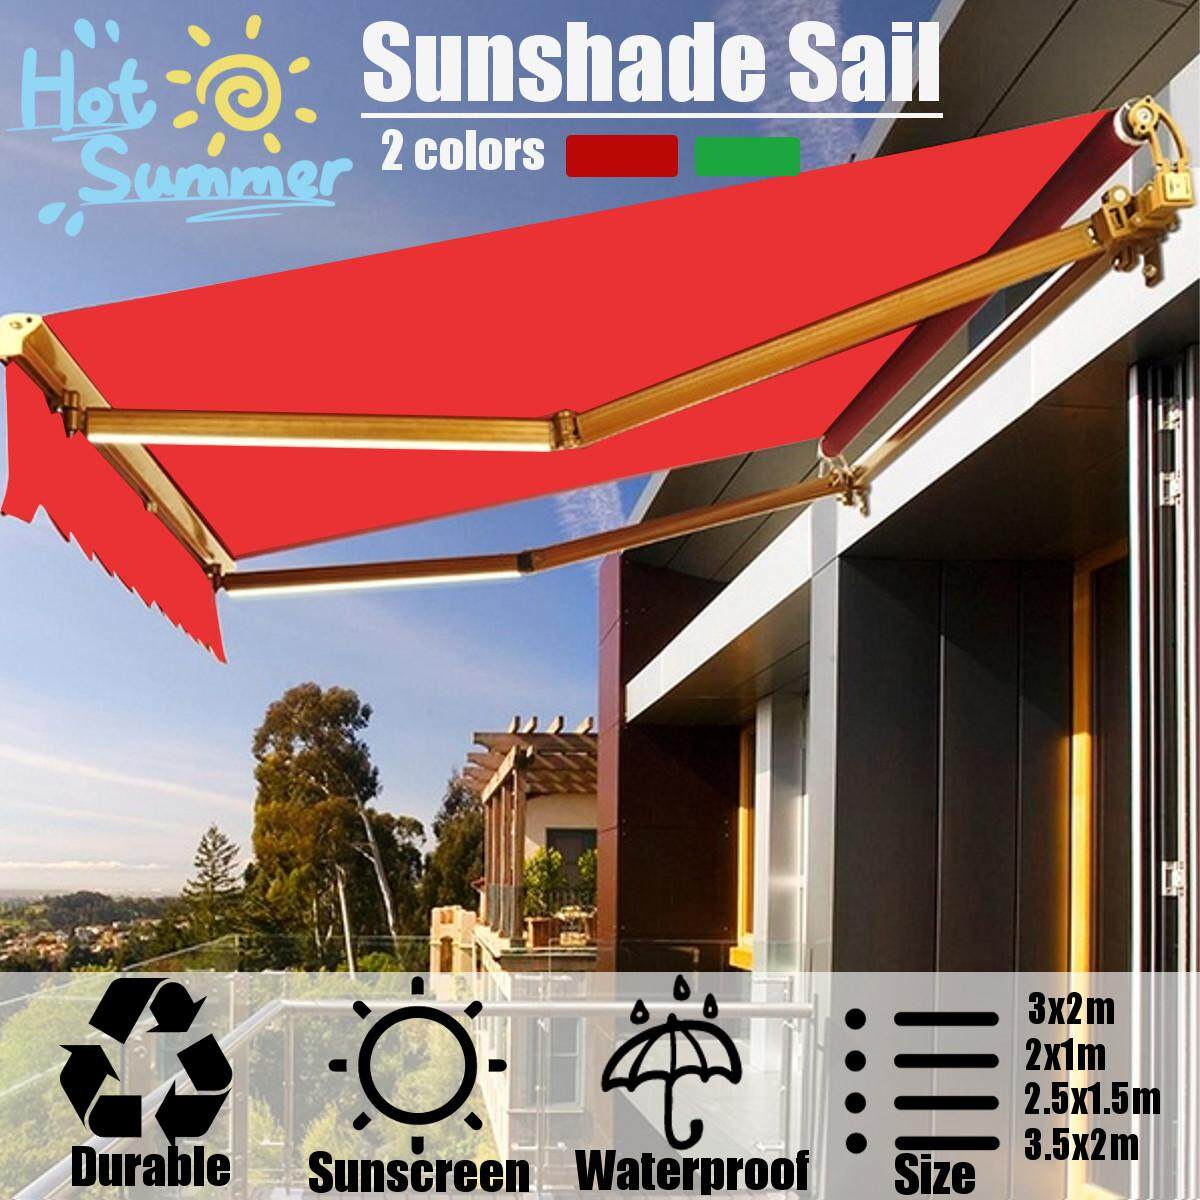 gaixample.org Blue/White Garden Awning 3m x 2.5m Patio Retractable ...